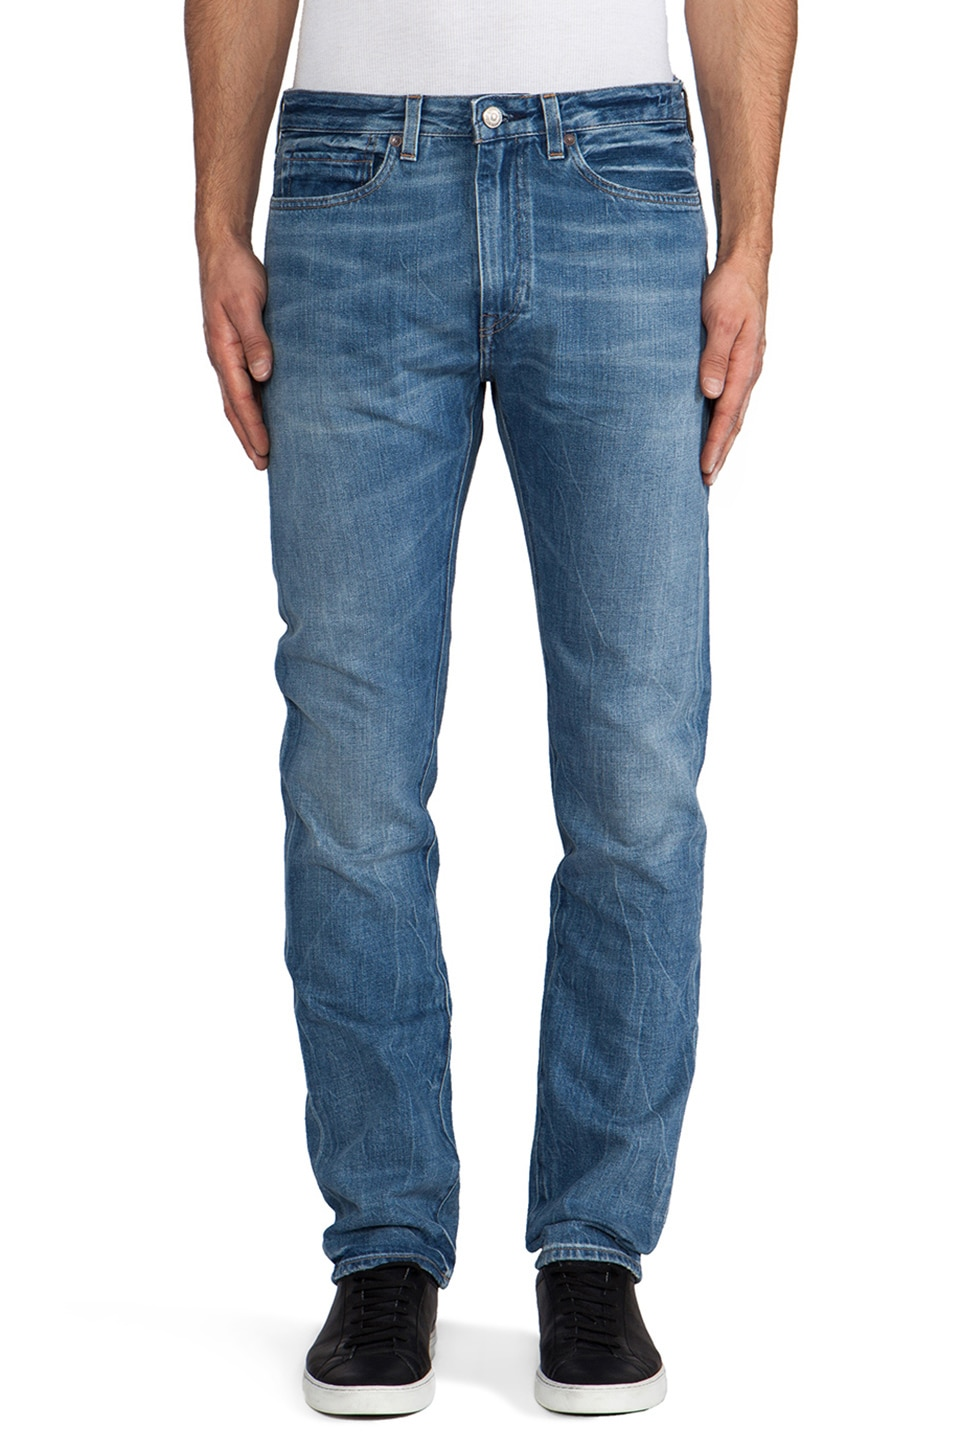 LEVI'S: Made & Crafted Tack Slim in Thunder